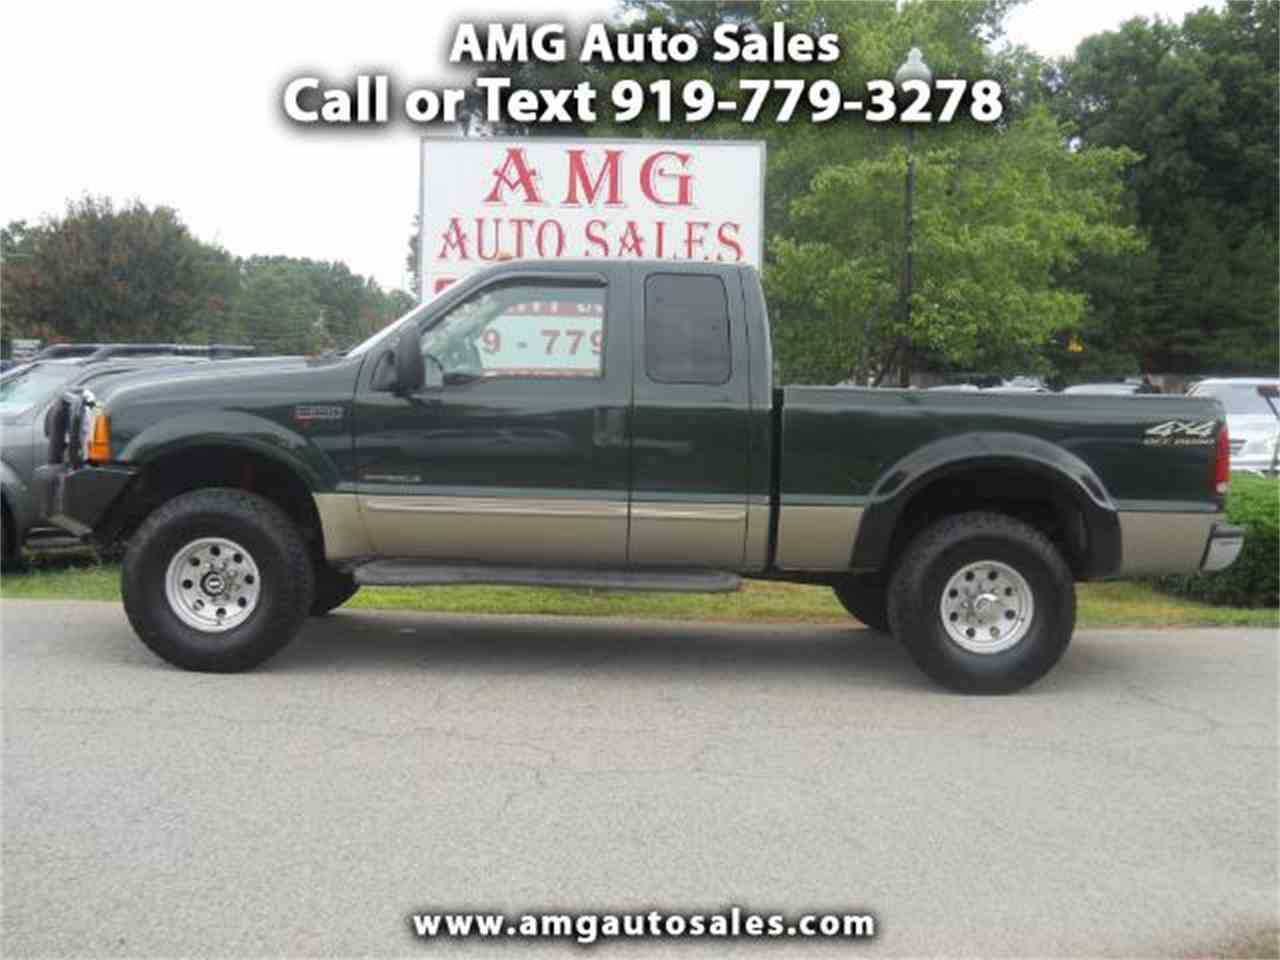 2000 Ford F250 For Sale In Raleigh Nc 1ftnx21f8yed99416 Super Duty